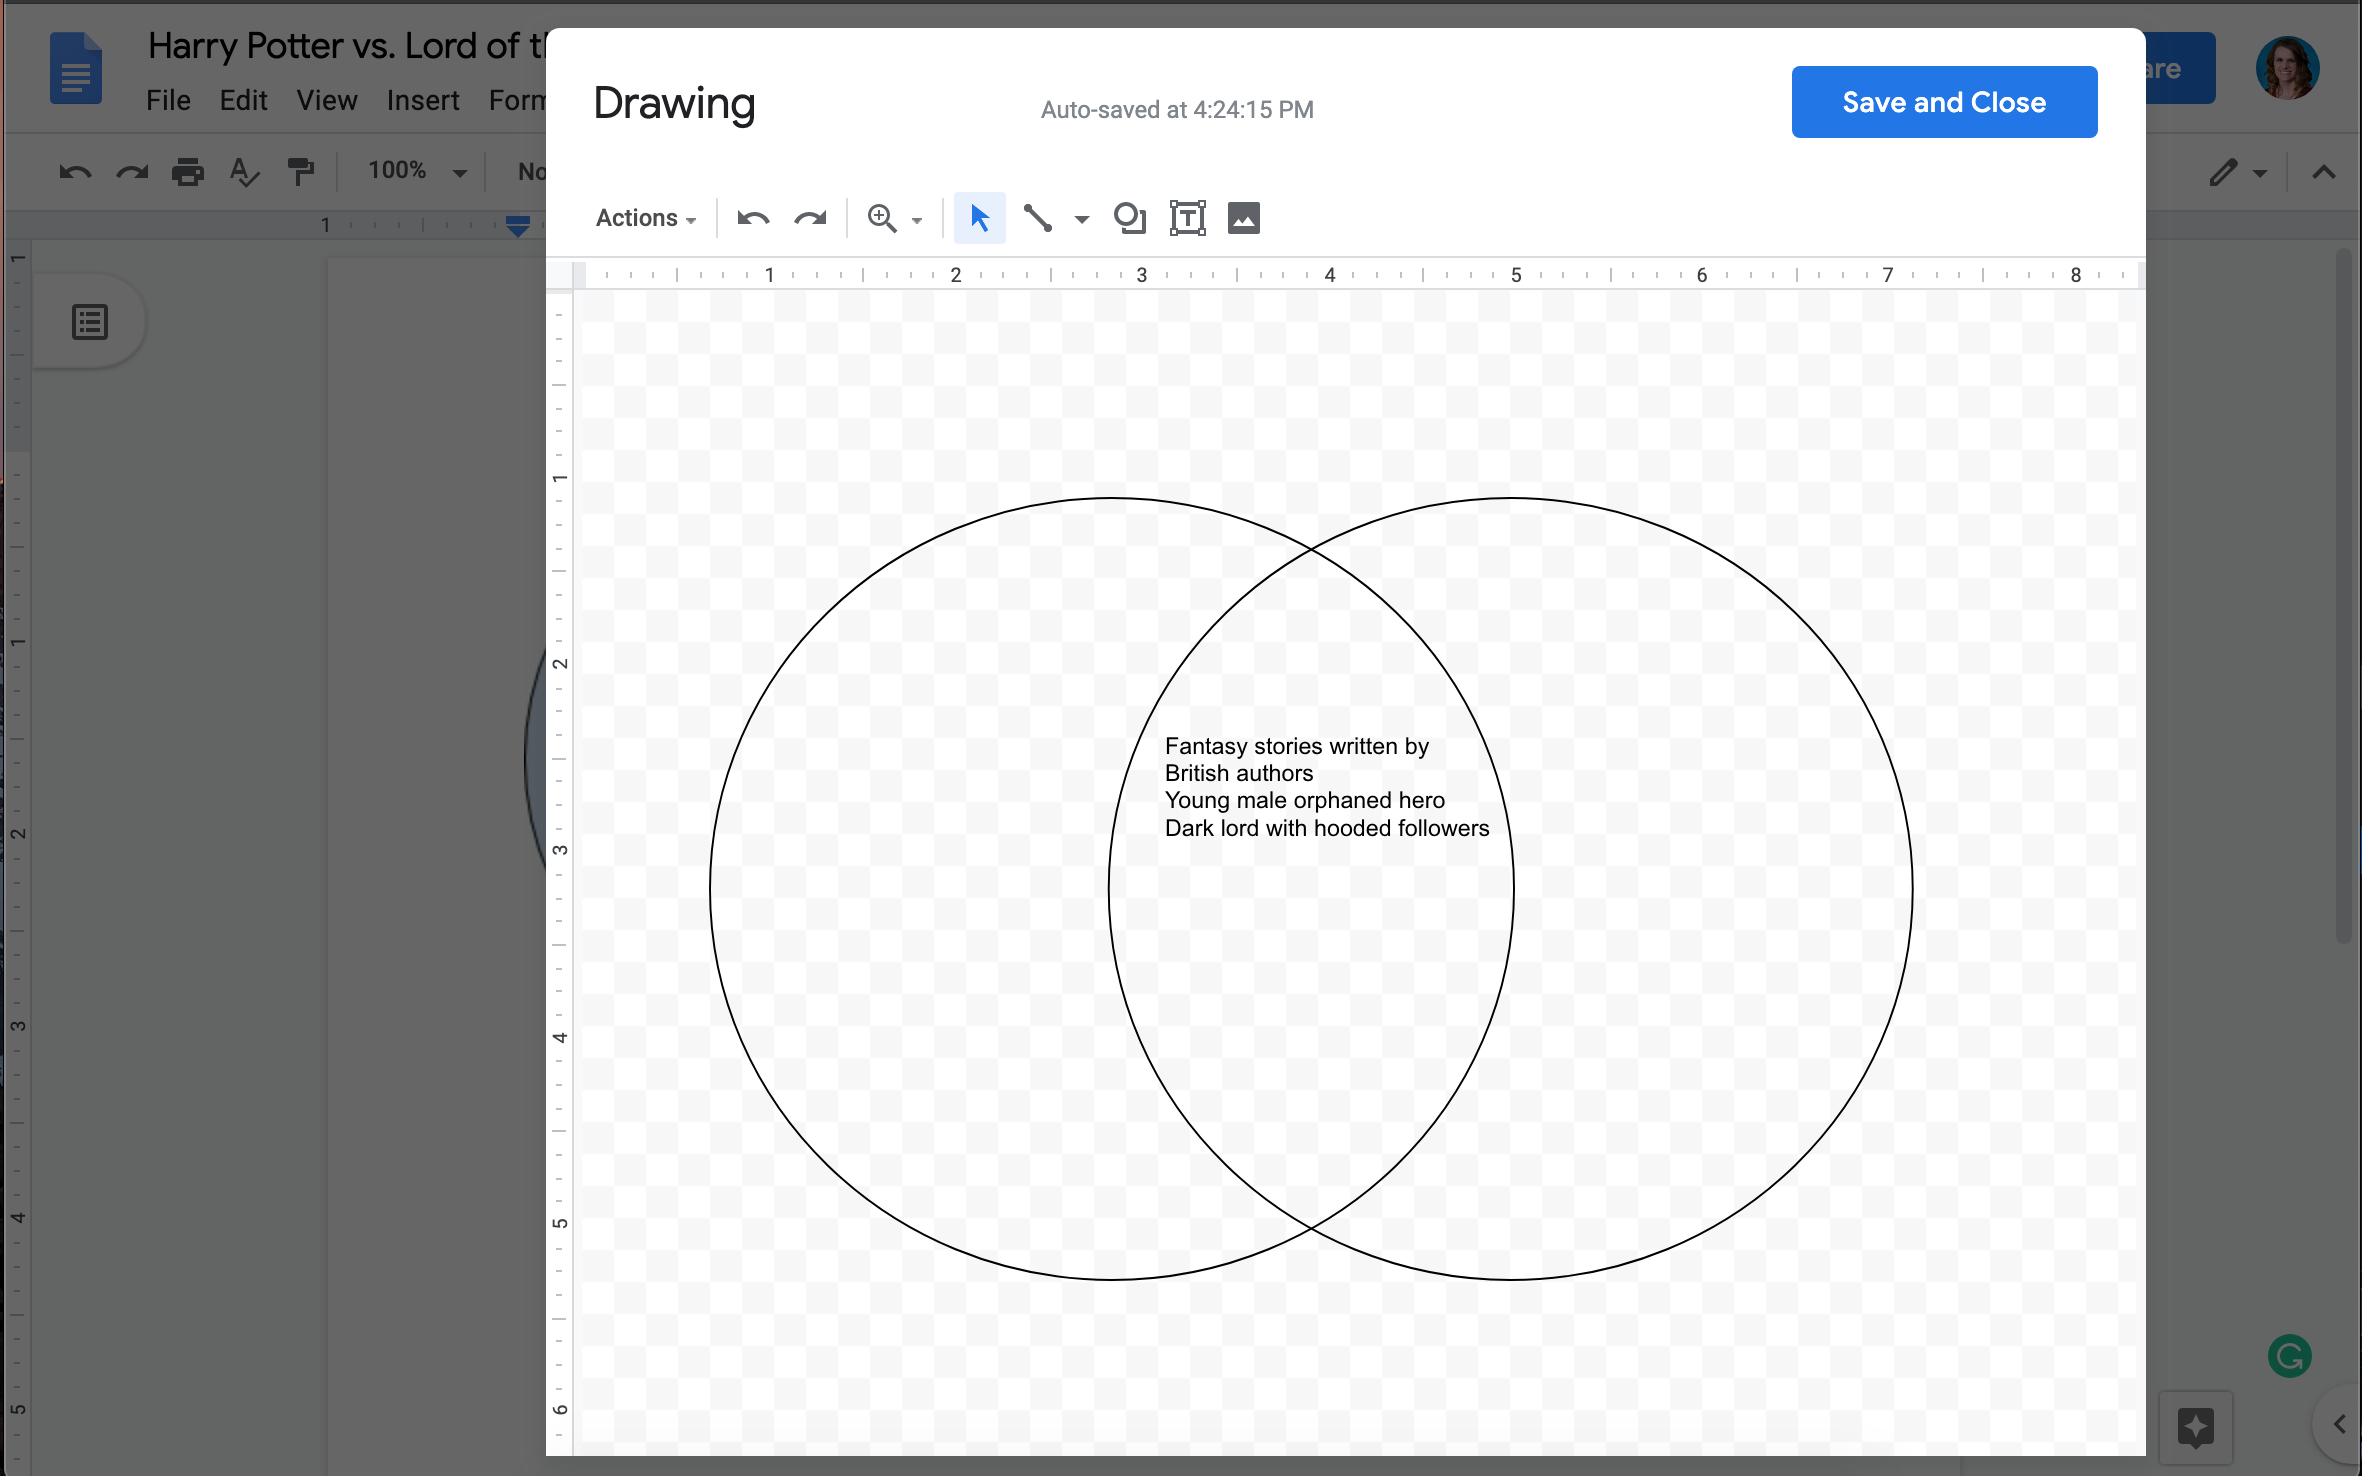 How To Make A Venn Diagram In Google Docs